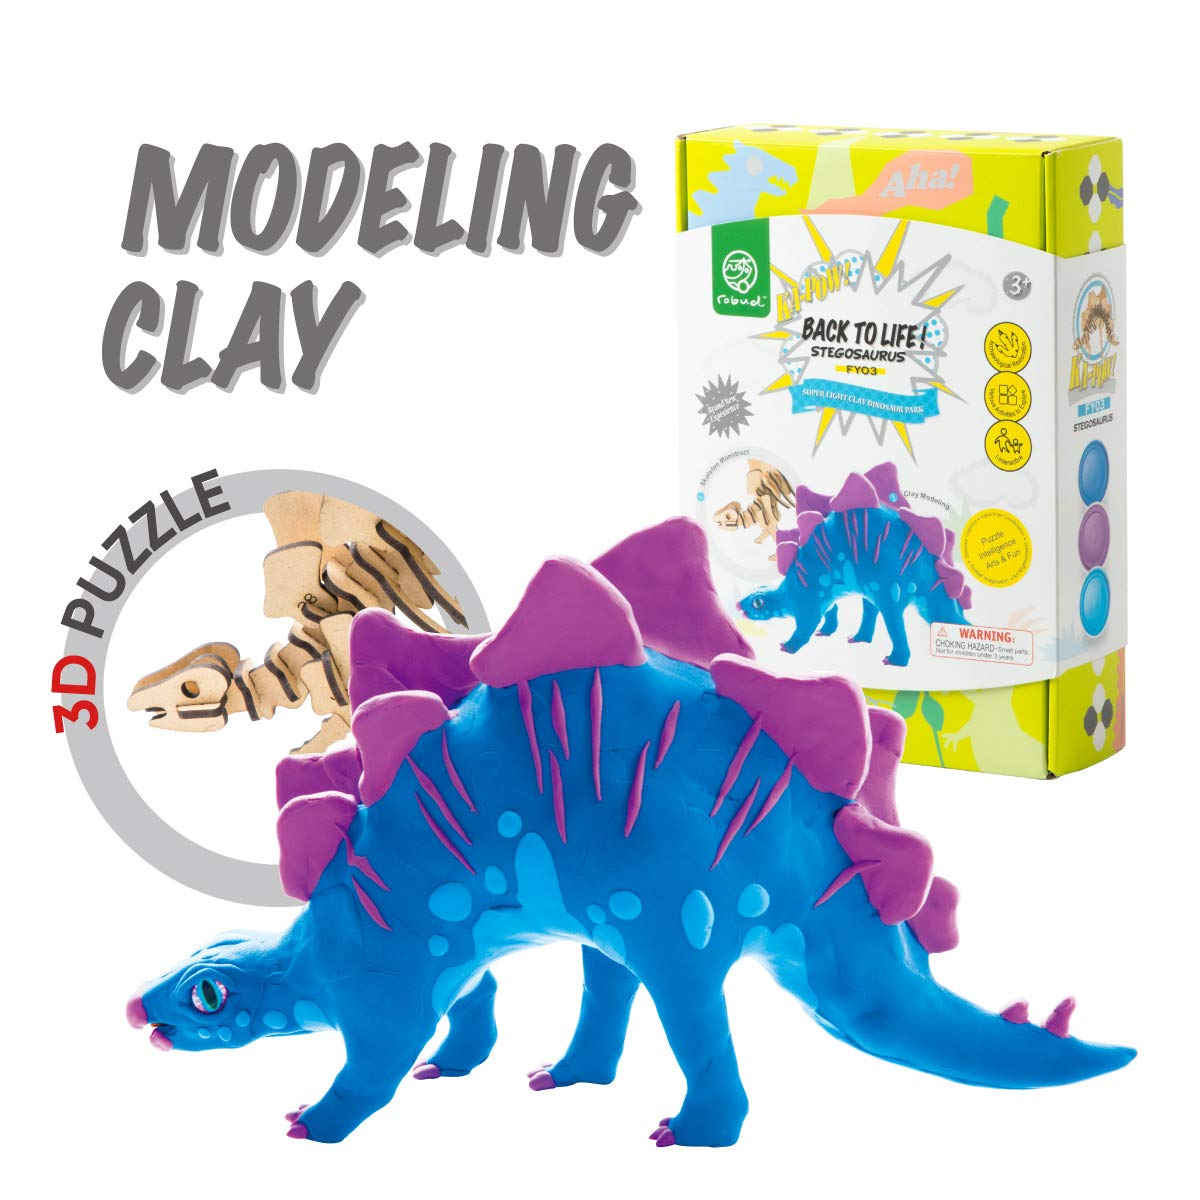 ROBUD Build Dinosaur Figure with Modeling Clay-Dinosaur Toy Playset for Educational Learning-Creative DIY 3D Wooden Skeleton Puzzle-Ideal Christmas Birthday Gifts for Kids(T-Rex)